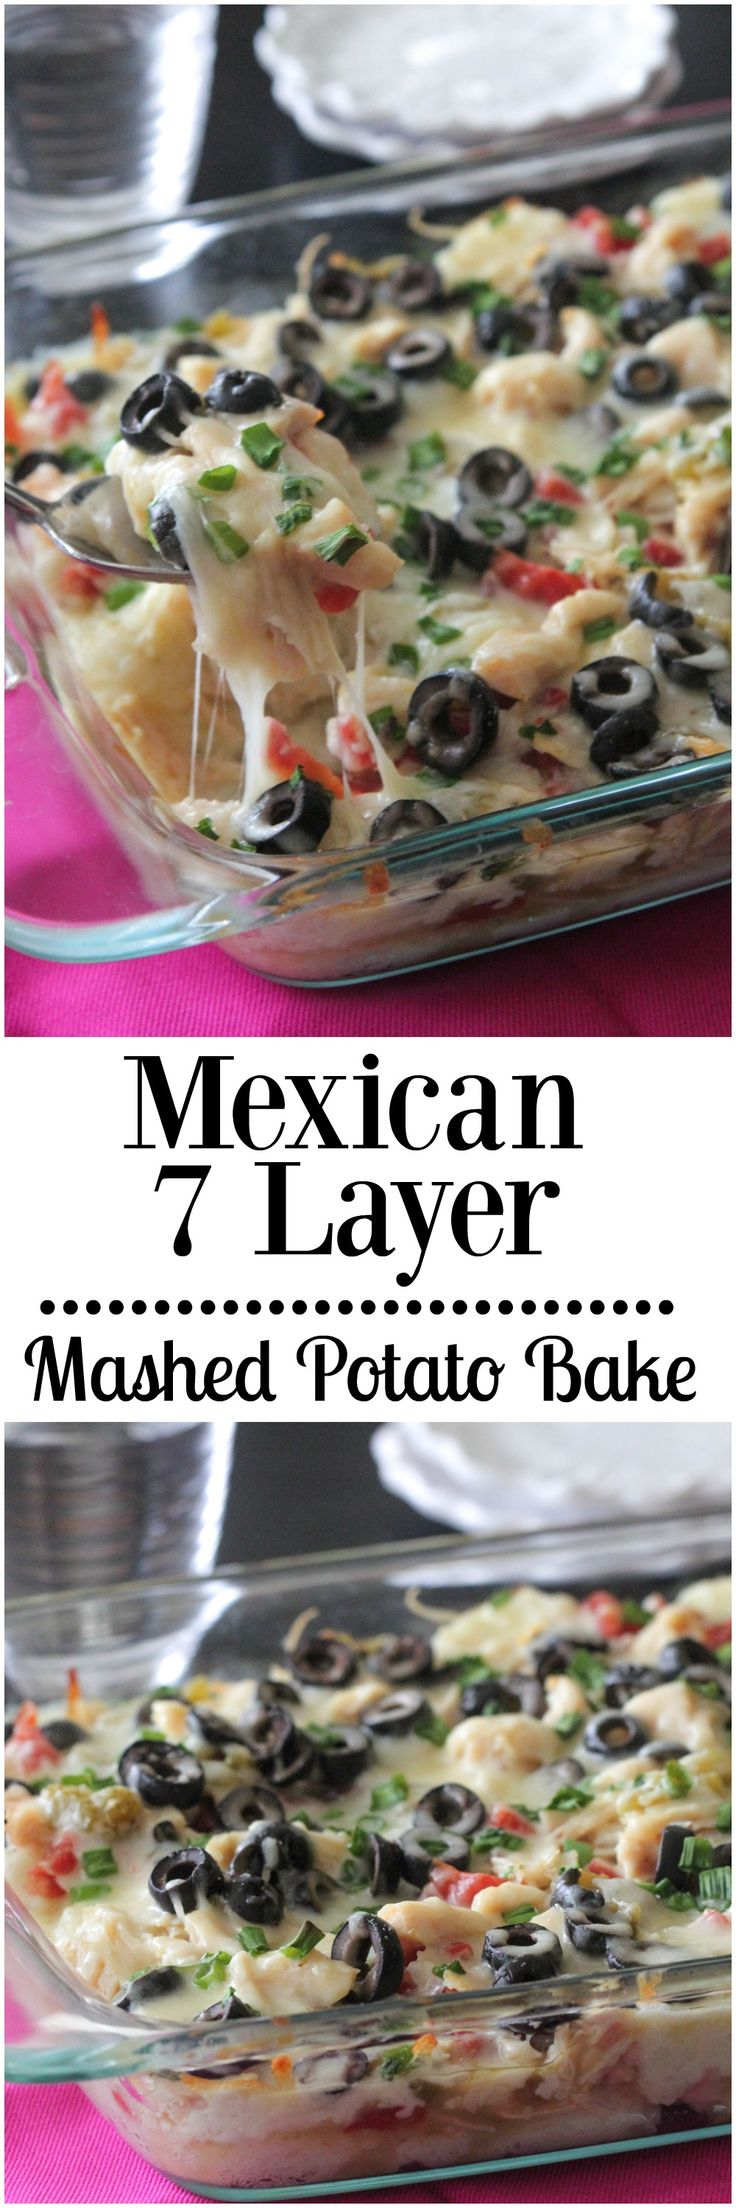 10246 best best comfort food recipes images on pinterest drink mexican 7 layer mashed potato bake forumfinder